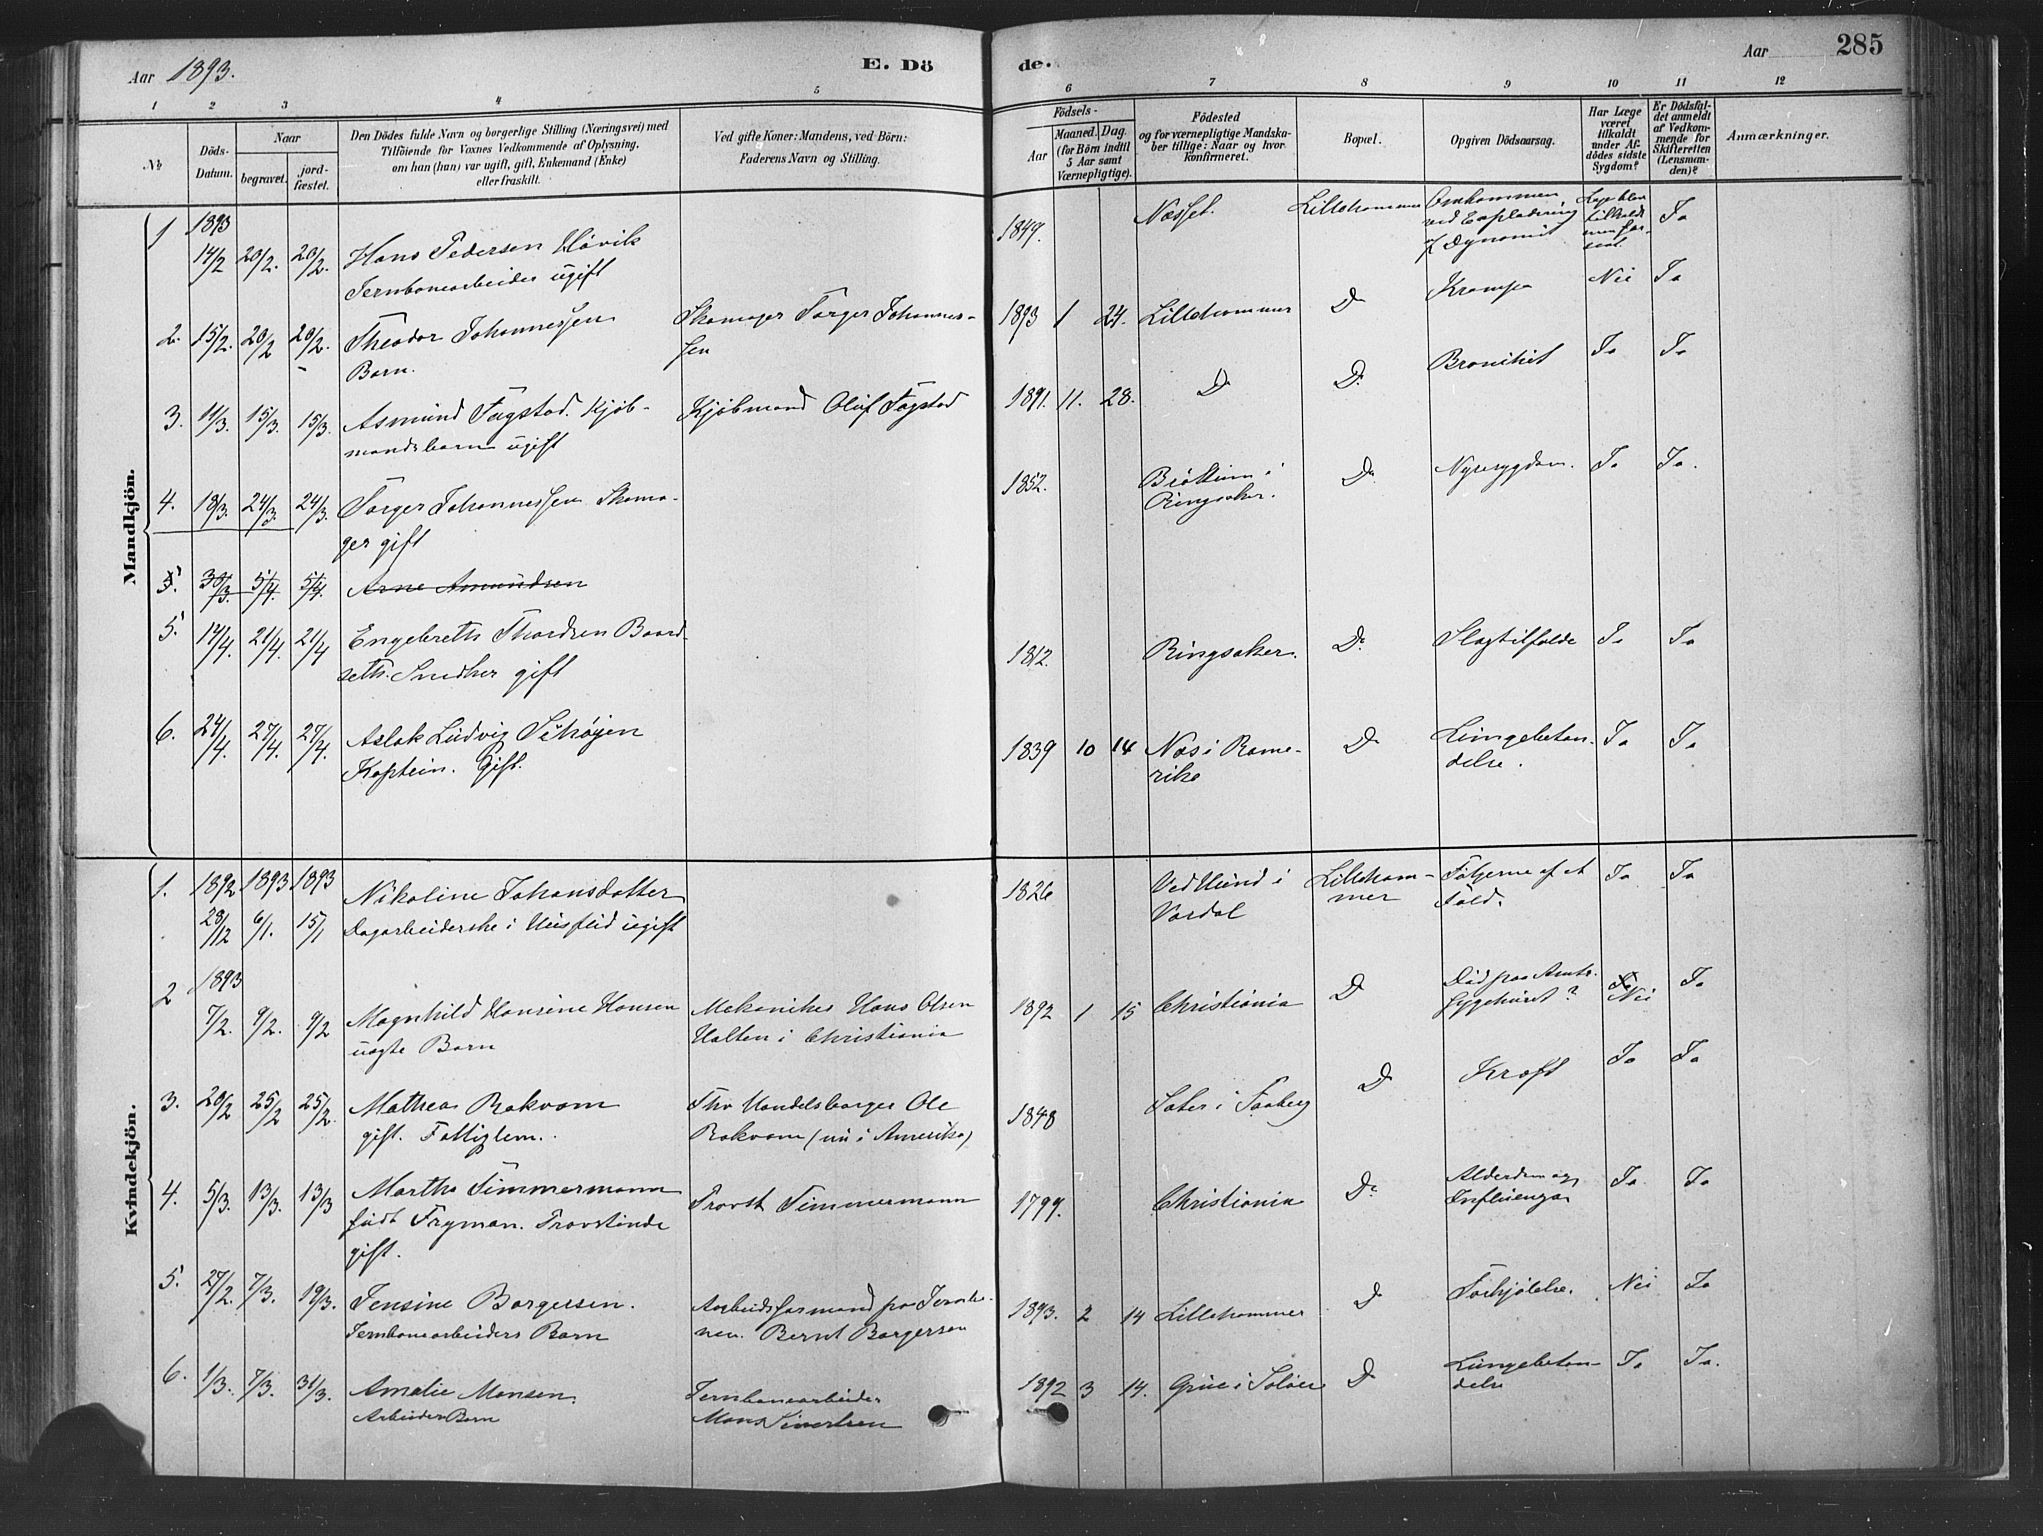 SAH, Fåberg prestekontor, H/Ha/Haa/L0010: Parish register (official) no. 10, 1879-1900, p. 285